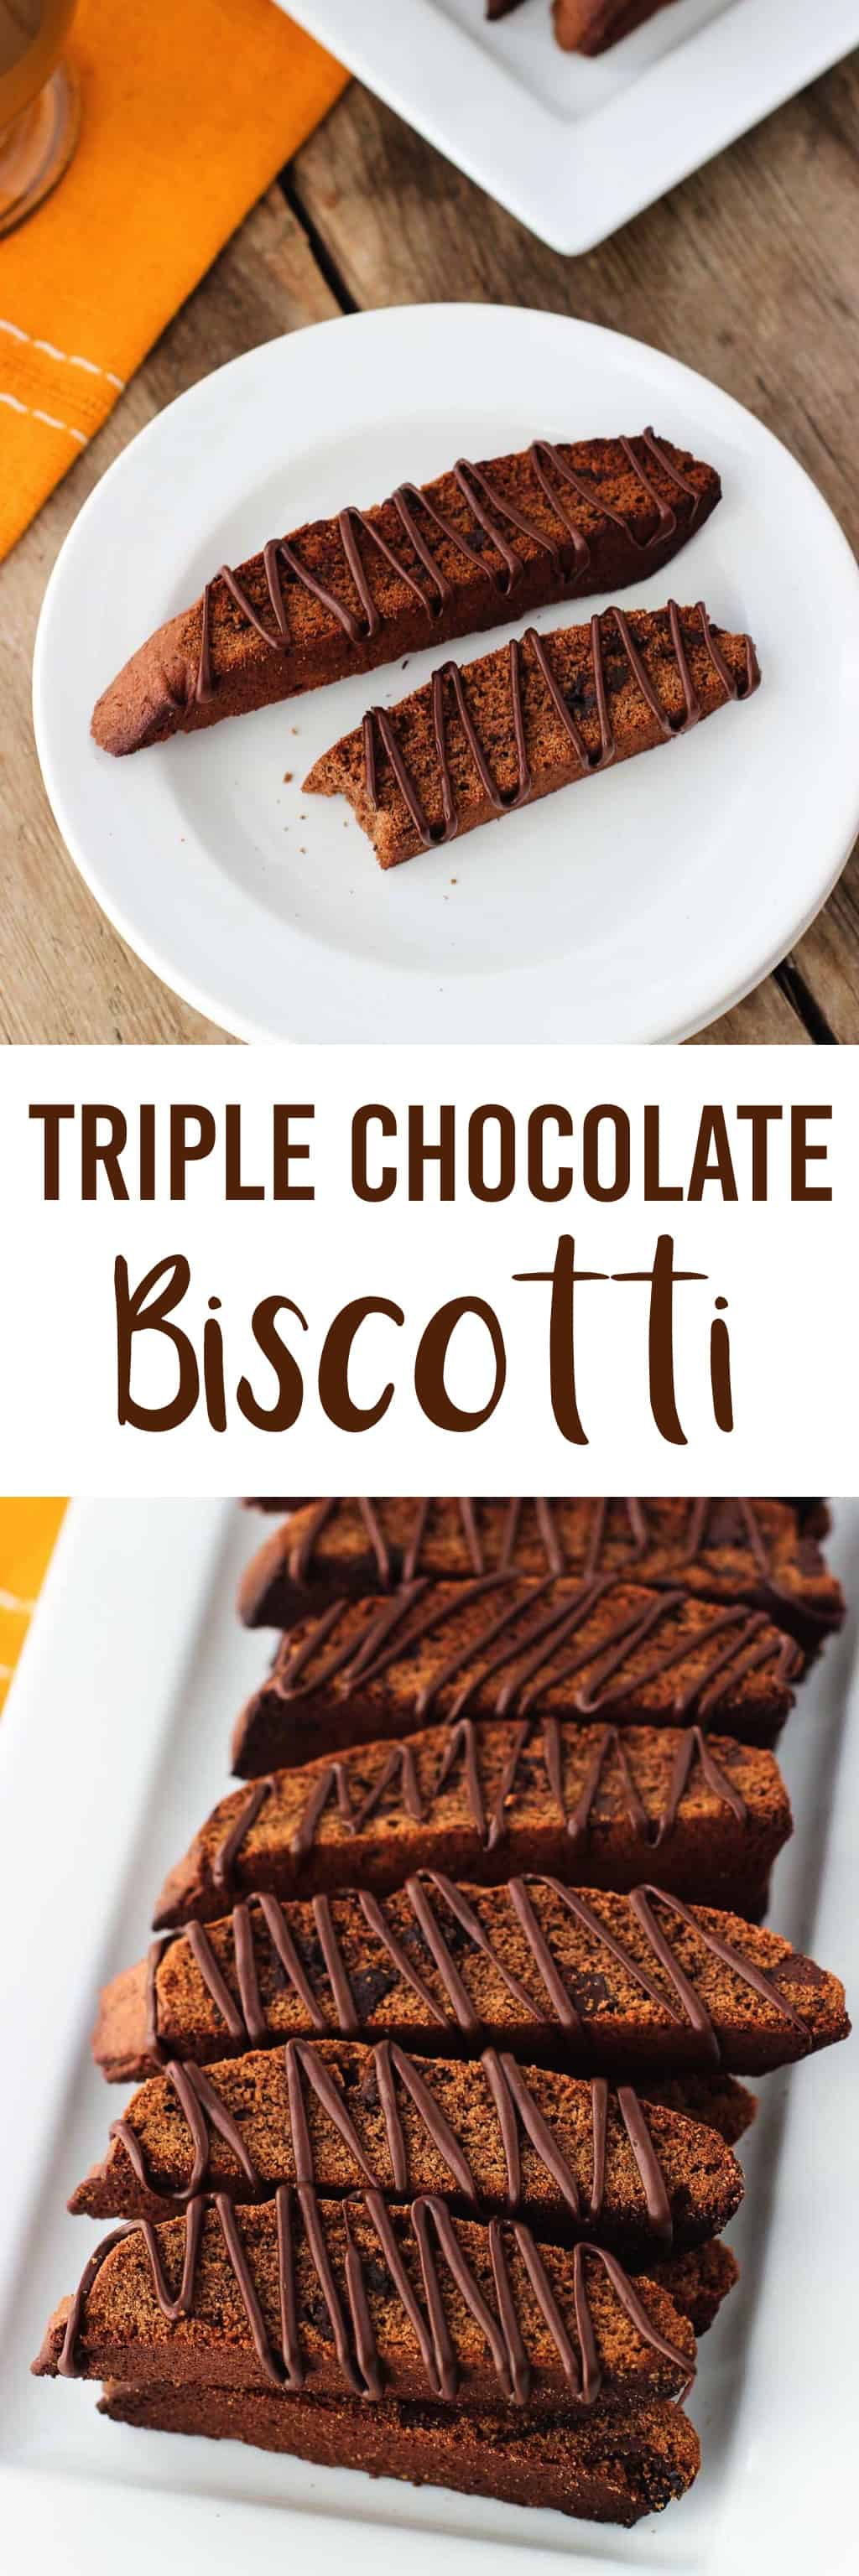 Triple Chocolate Biscotti - perfectly crisp (but not too crisp) chocolate biscotti loaded with two kinds of chips and a chocolate drizzle. A crowd favorite! mysequinedlife.com